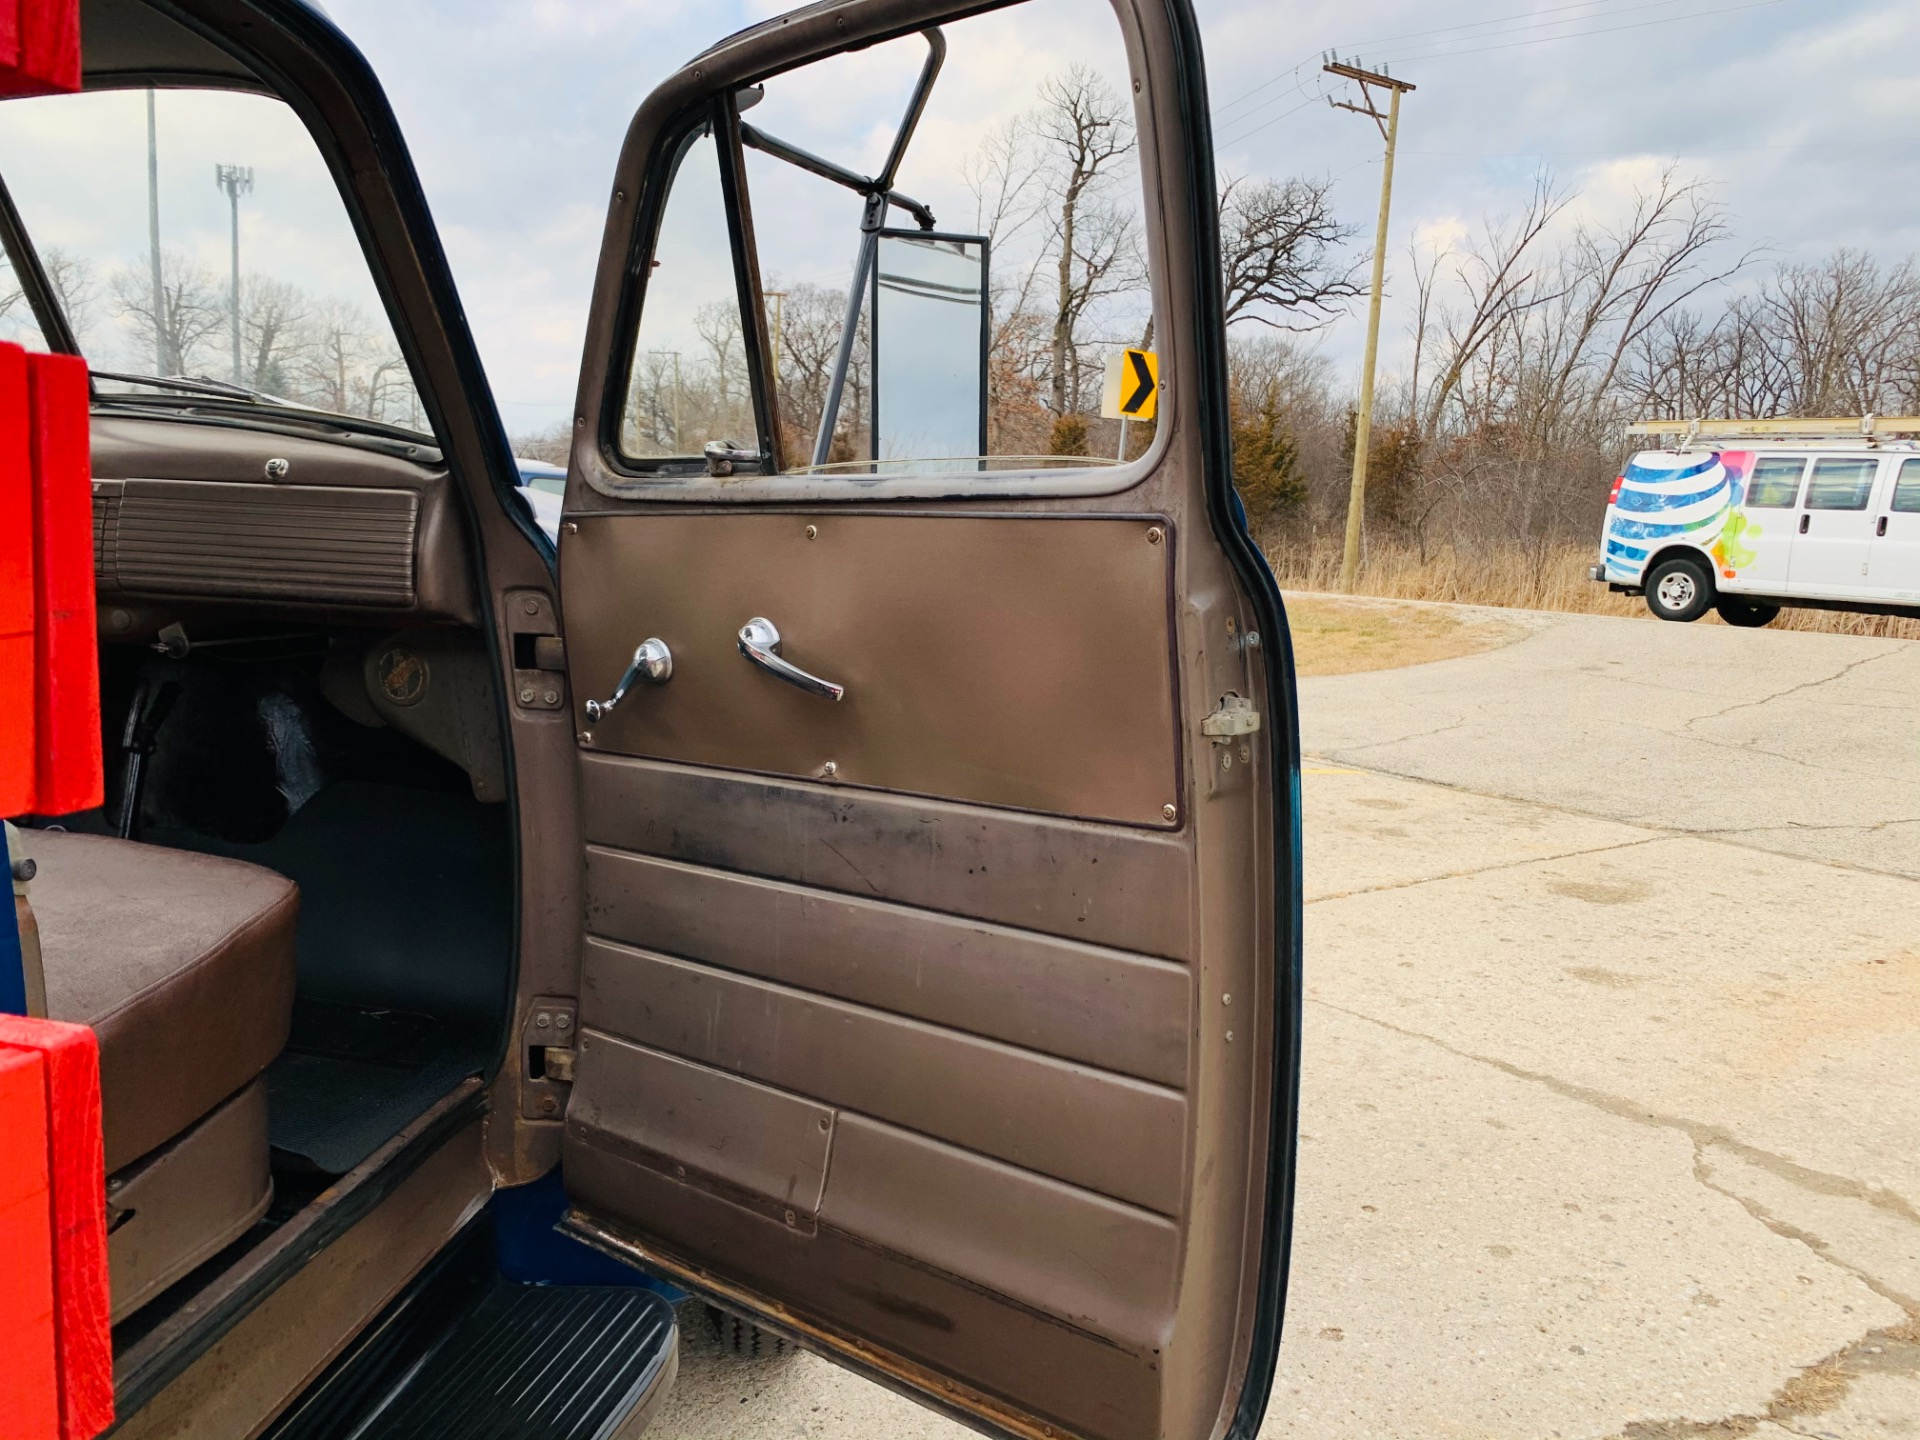 Used 1951 Chevrolet Truck - VERY LOW ORIGINAL MILES - VERY CLEAN HD TRUCK - | Mundelein, IL